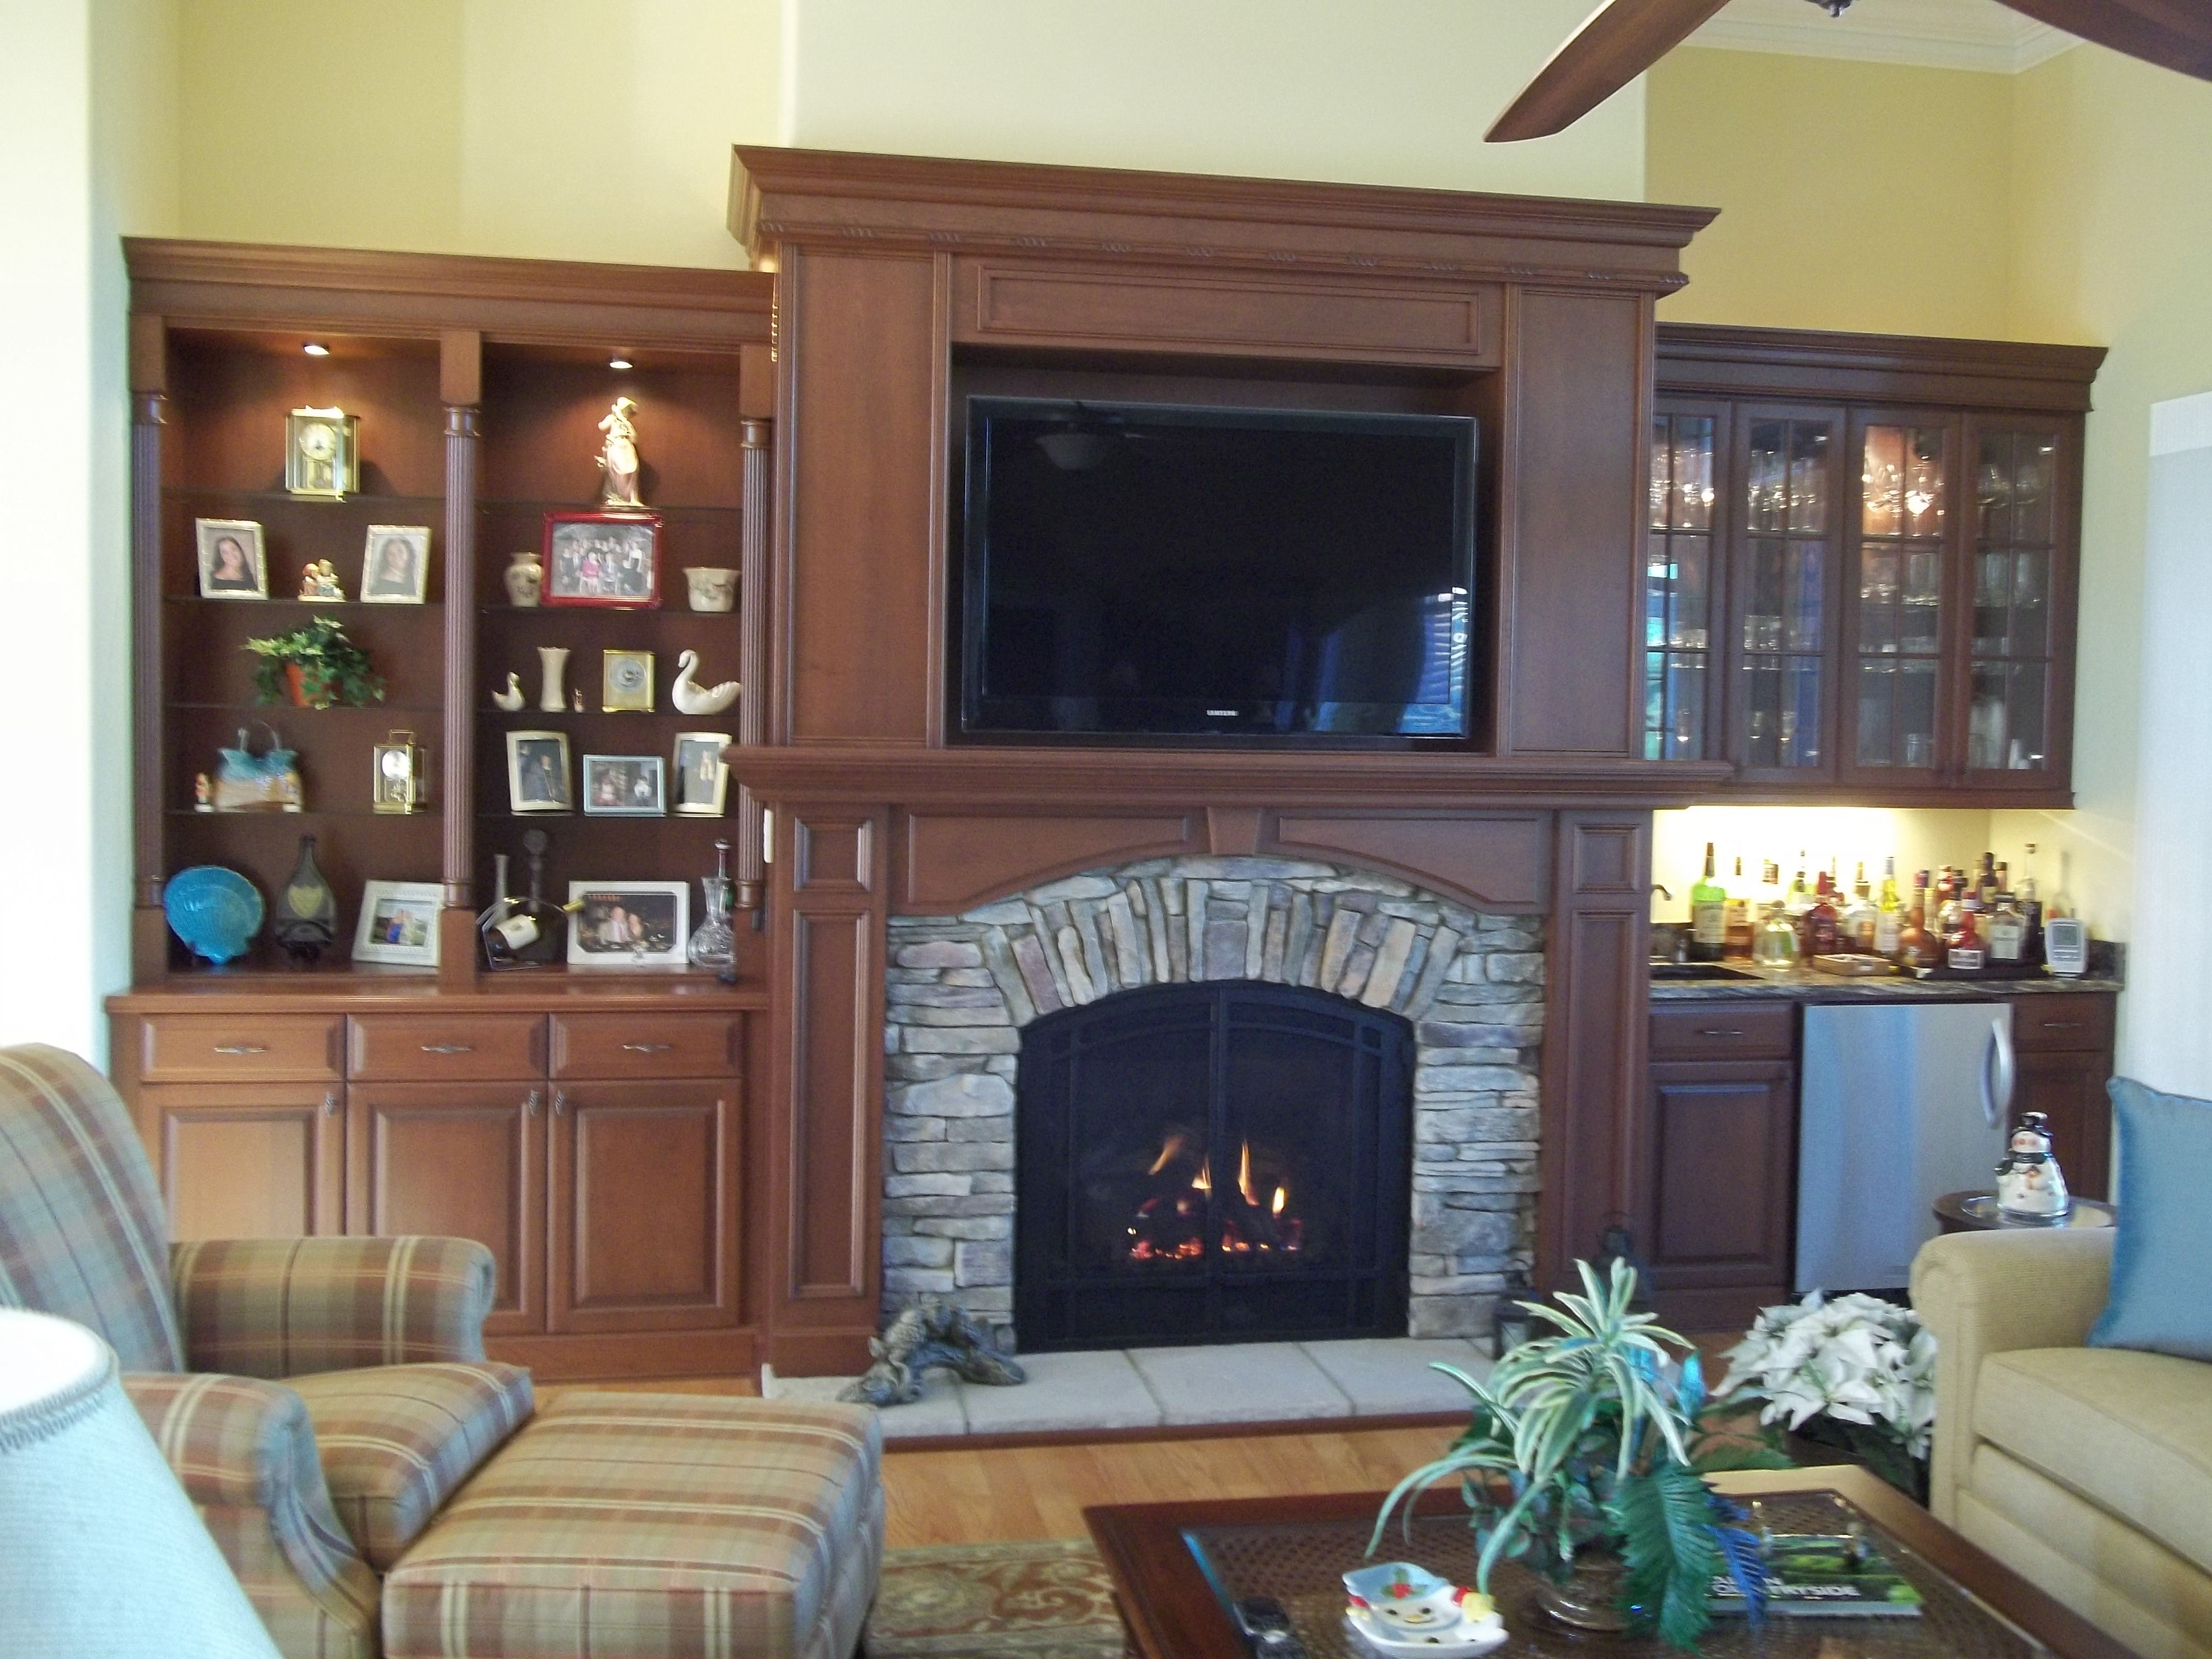 Efficiency of gas fireplace - A Mendota Dxv45 High Efficiency Gas Fireplace With Arched Bentley Doors In A Lovely Entertainment